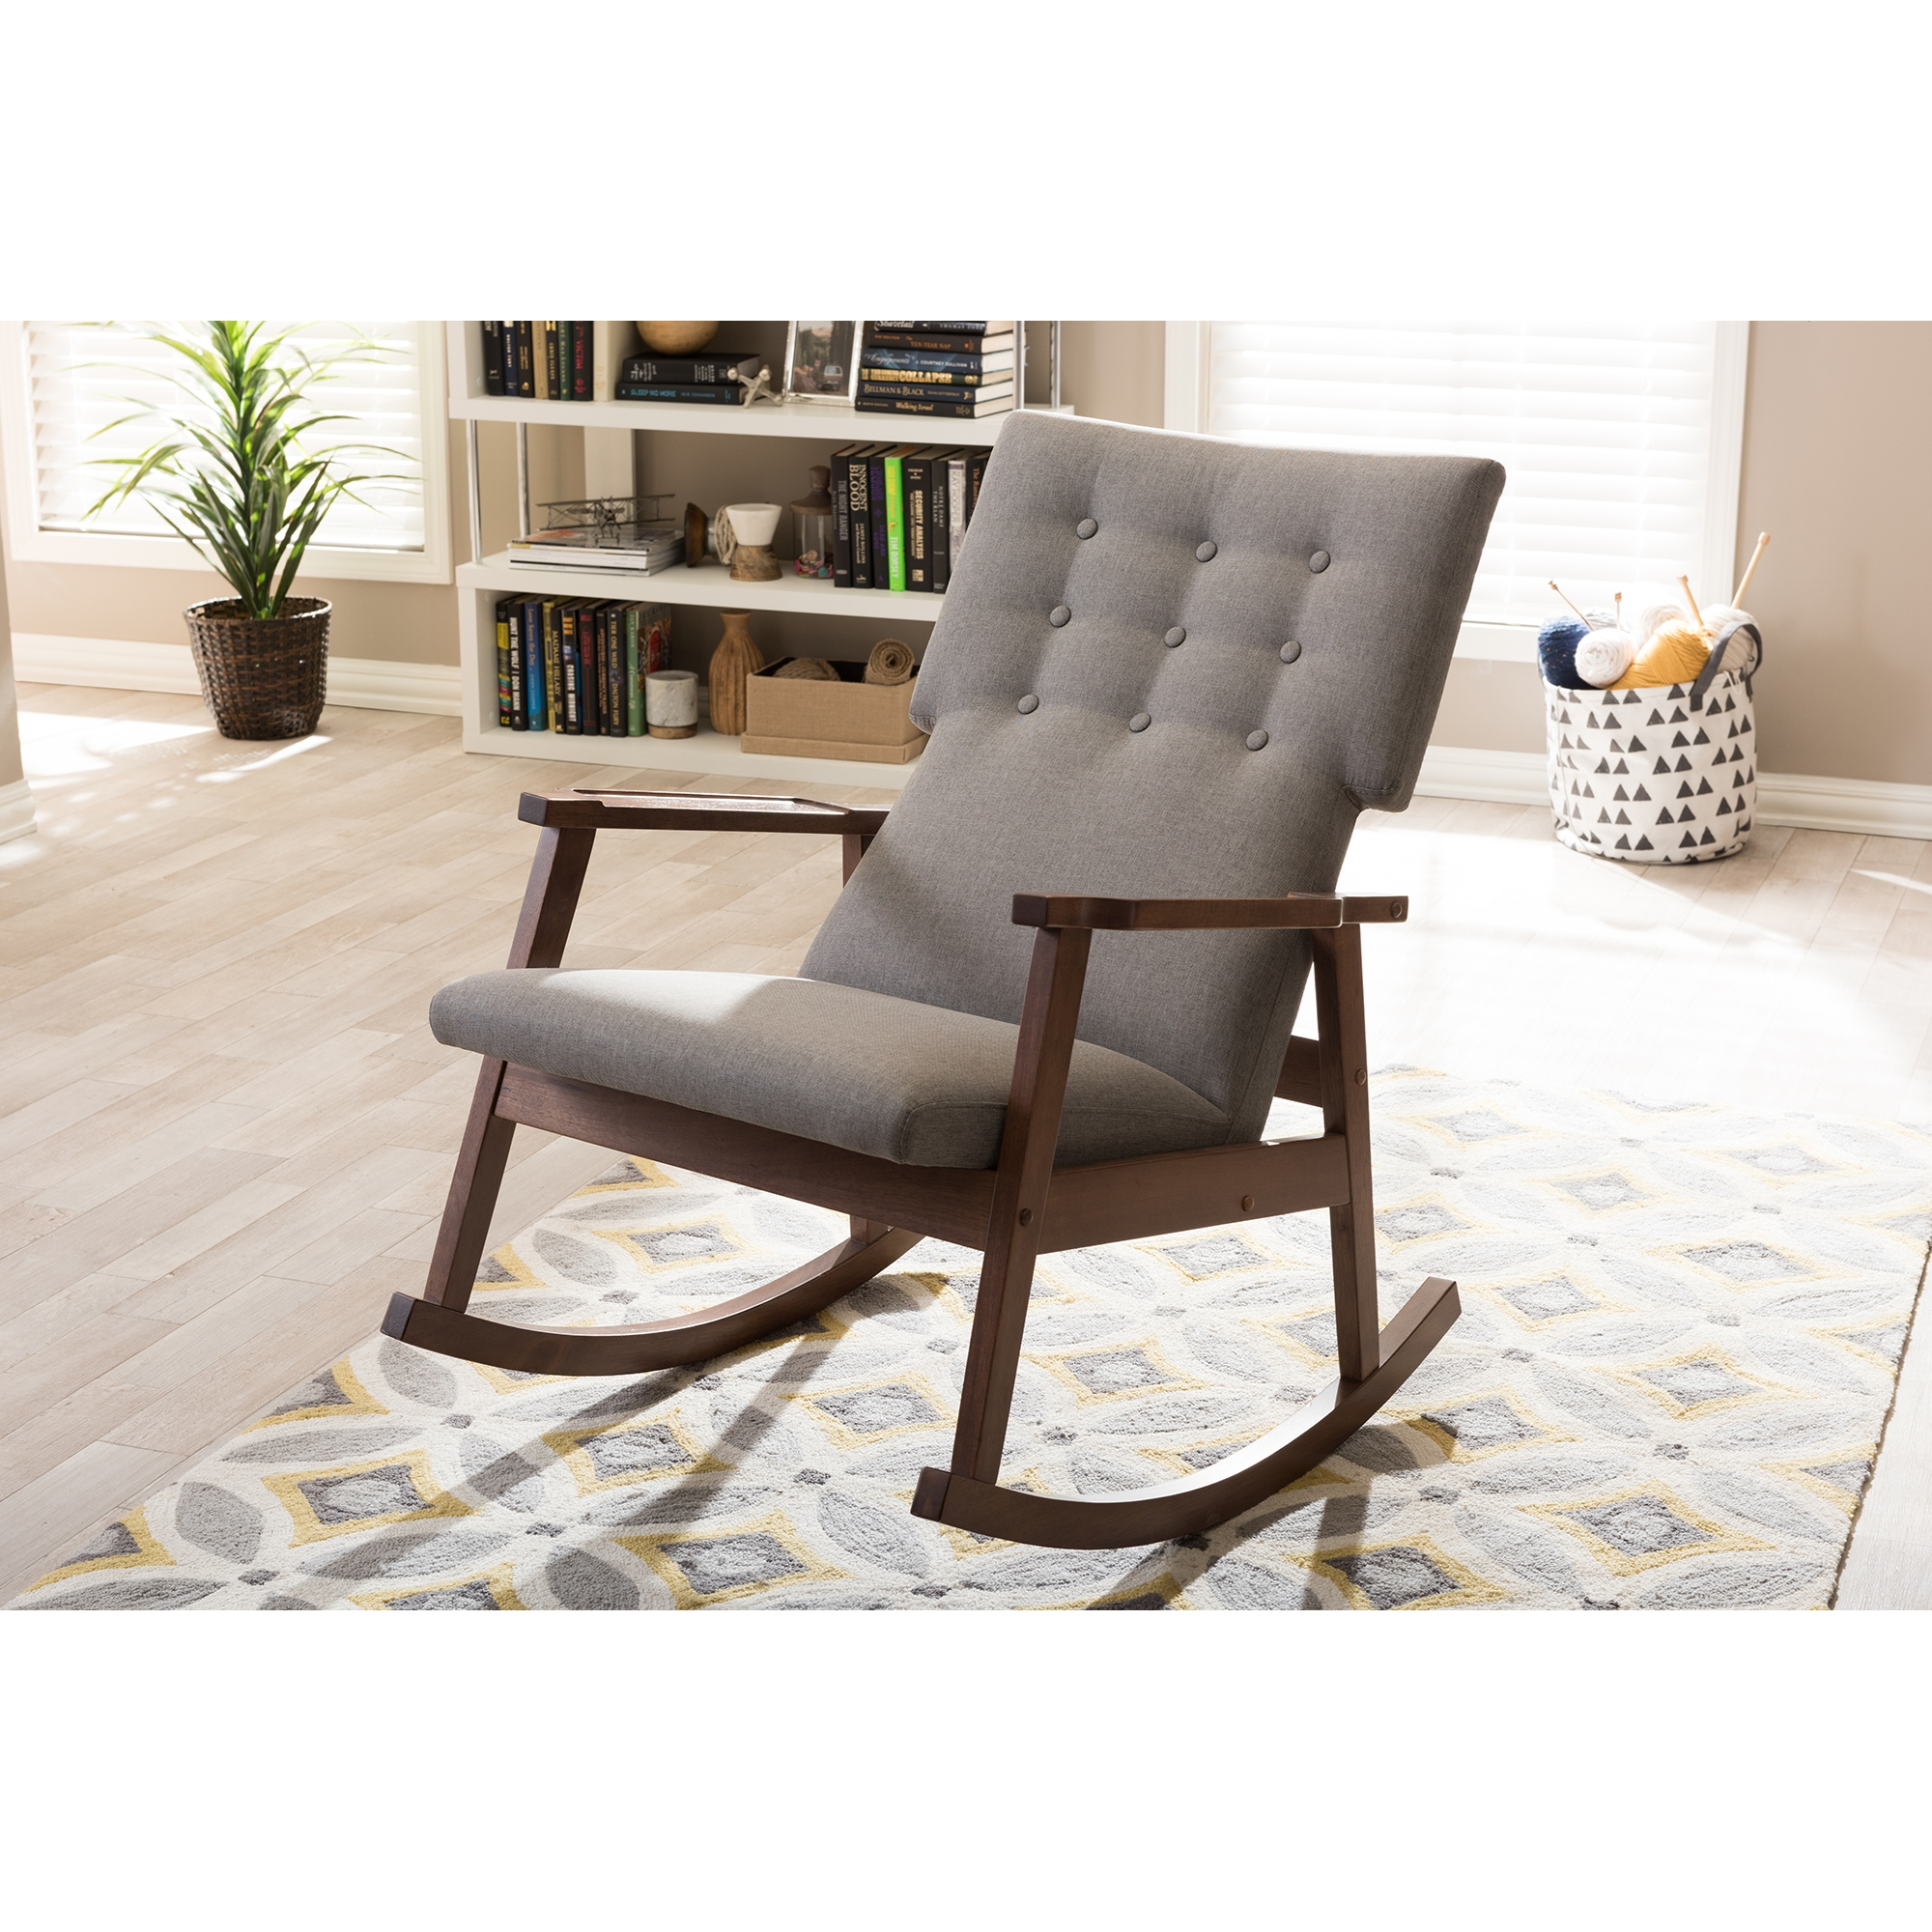 ... Baxton Studio Agatha Mid Century Modern Grey Fabric Upholstered  Button Tufted Rocking Chair